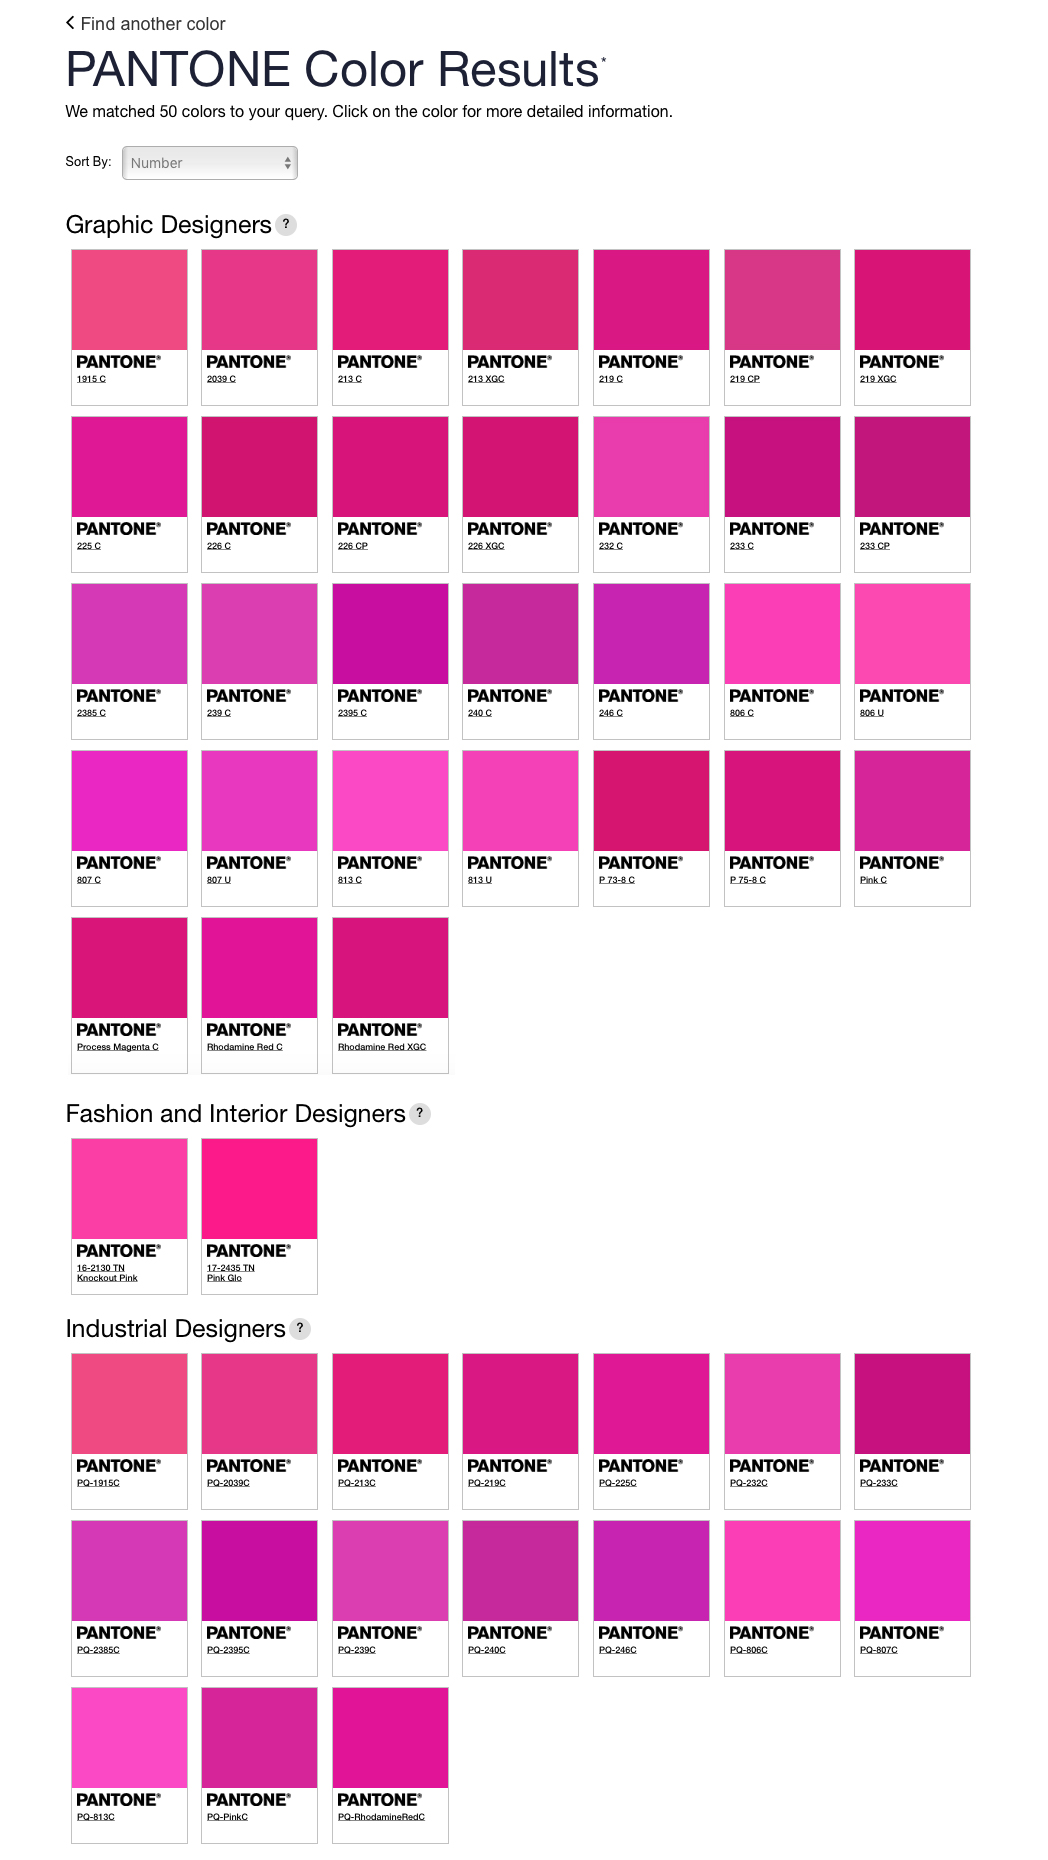 Pantone Color 2016 The New Pantone Color Finder Fashion Trendsetter